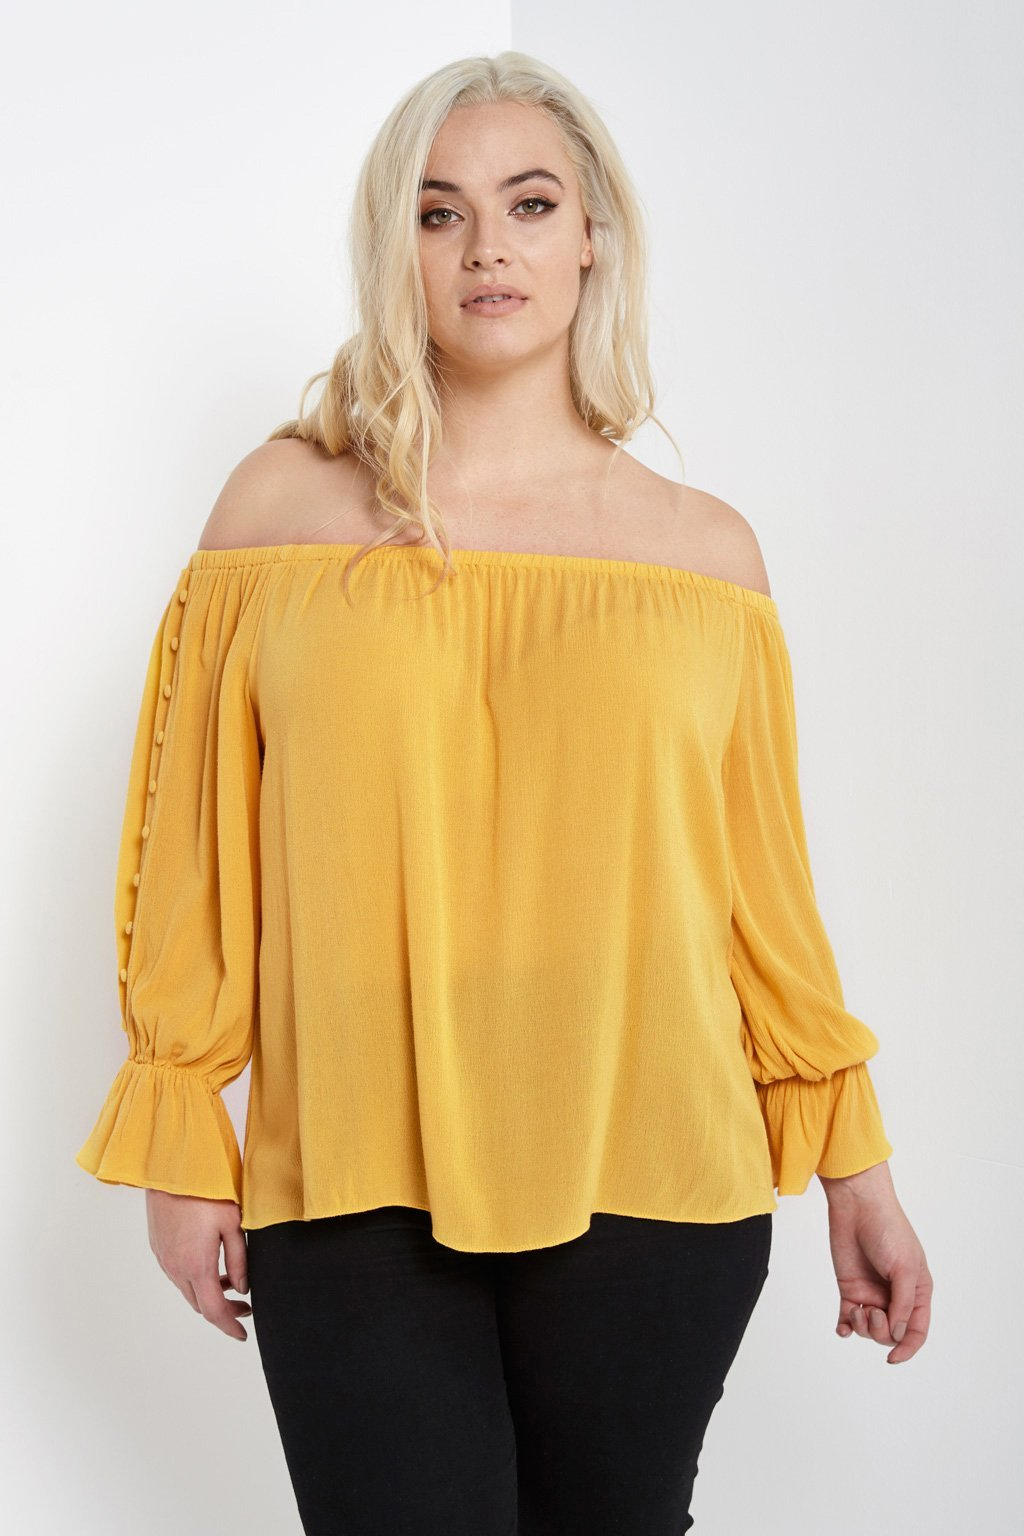 Poshsquare Plus 1XL / Mustard Off The Shoulder Button Sleeve Top Plus Size